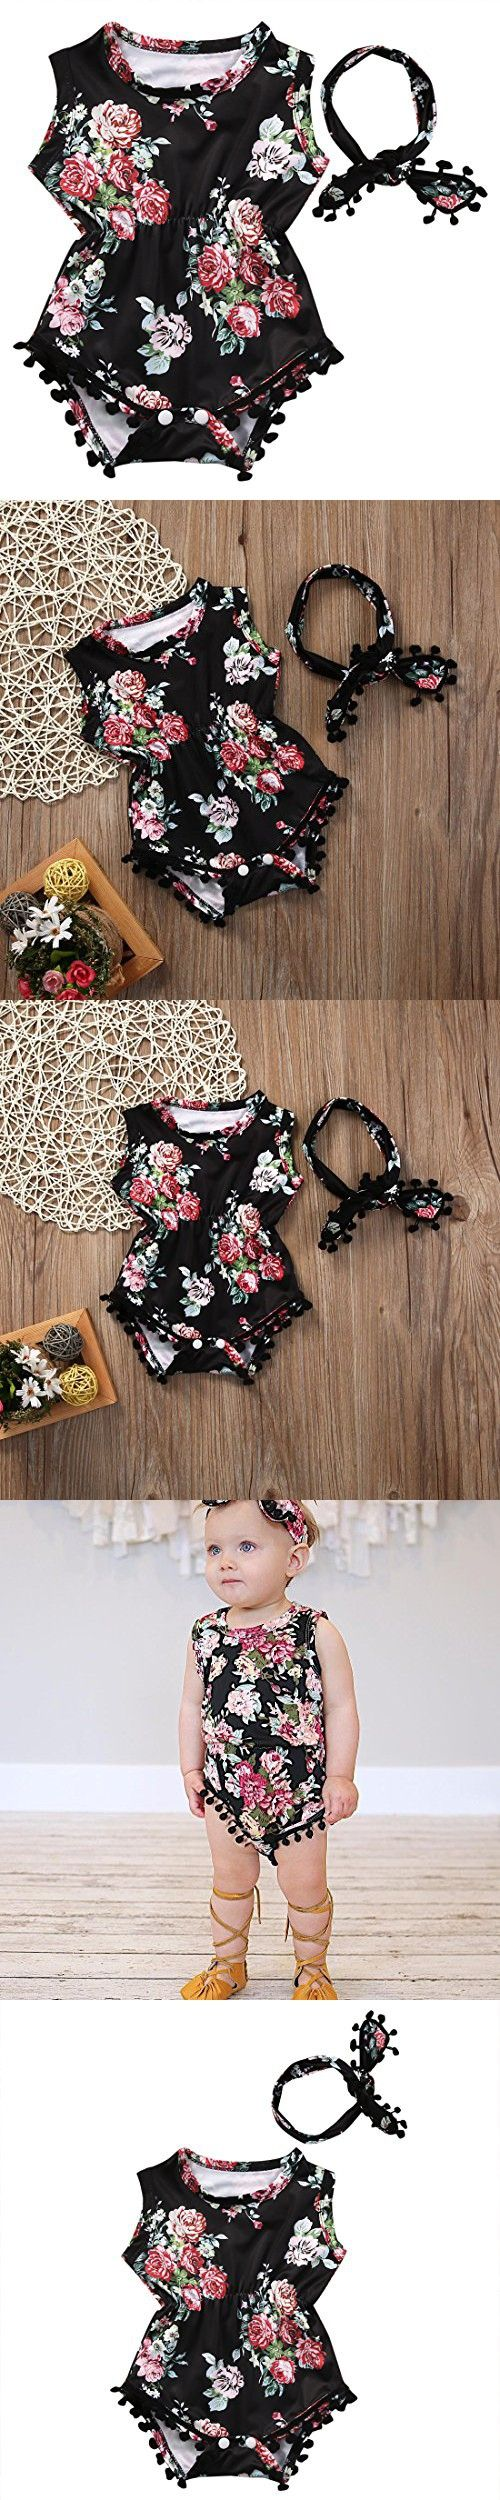 cc330684c Cute Adorable Floral Romper Baby Girls Sleeveless Tassel Romper One-pieces +Headband  Sunsuit Outfit Clothes (18-24 Months, Black)